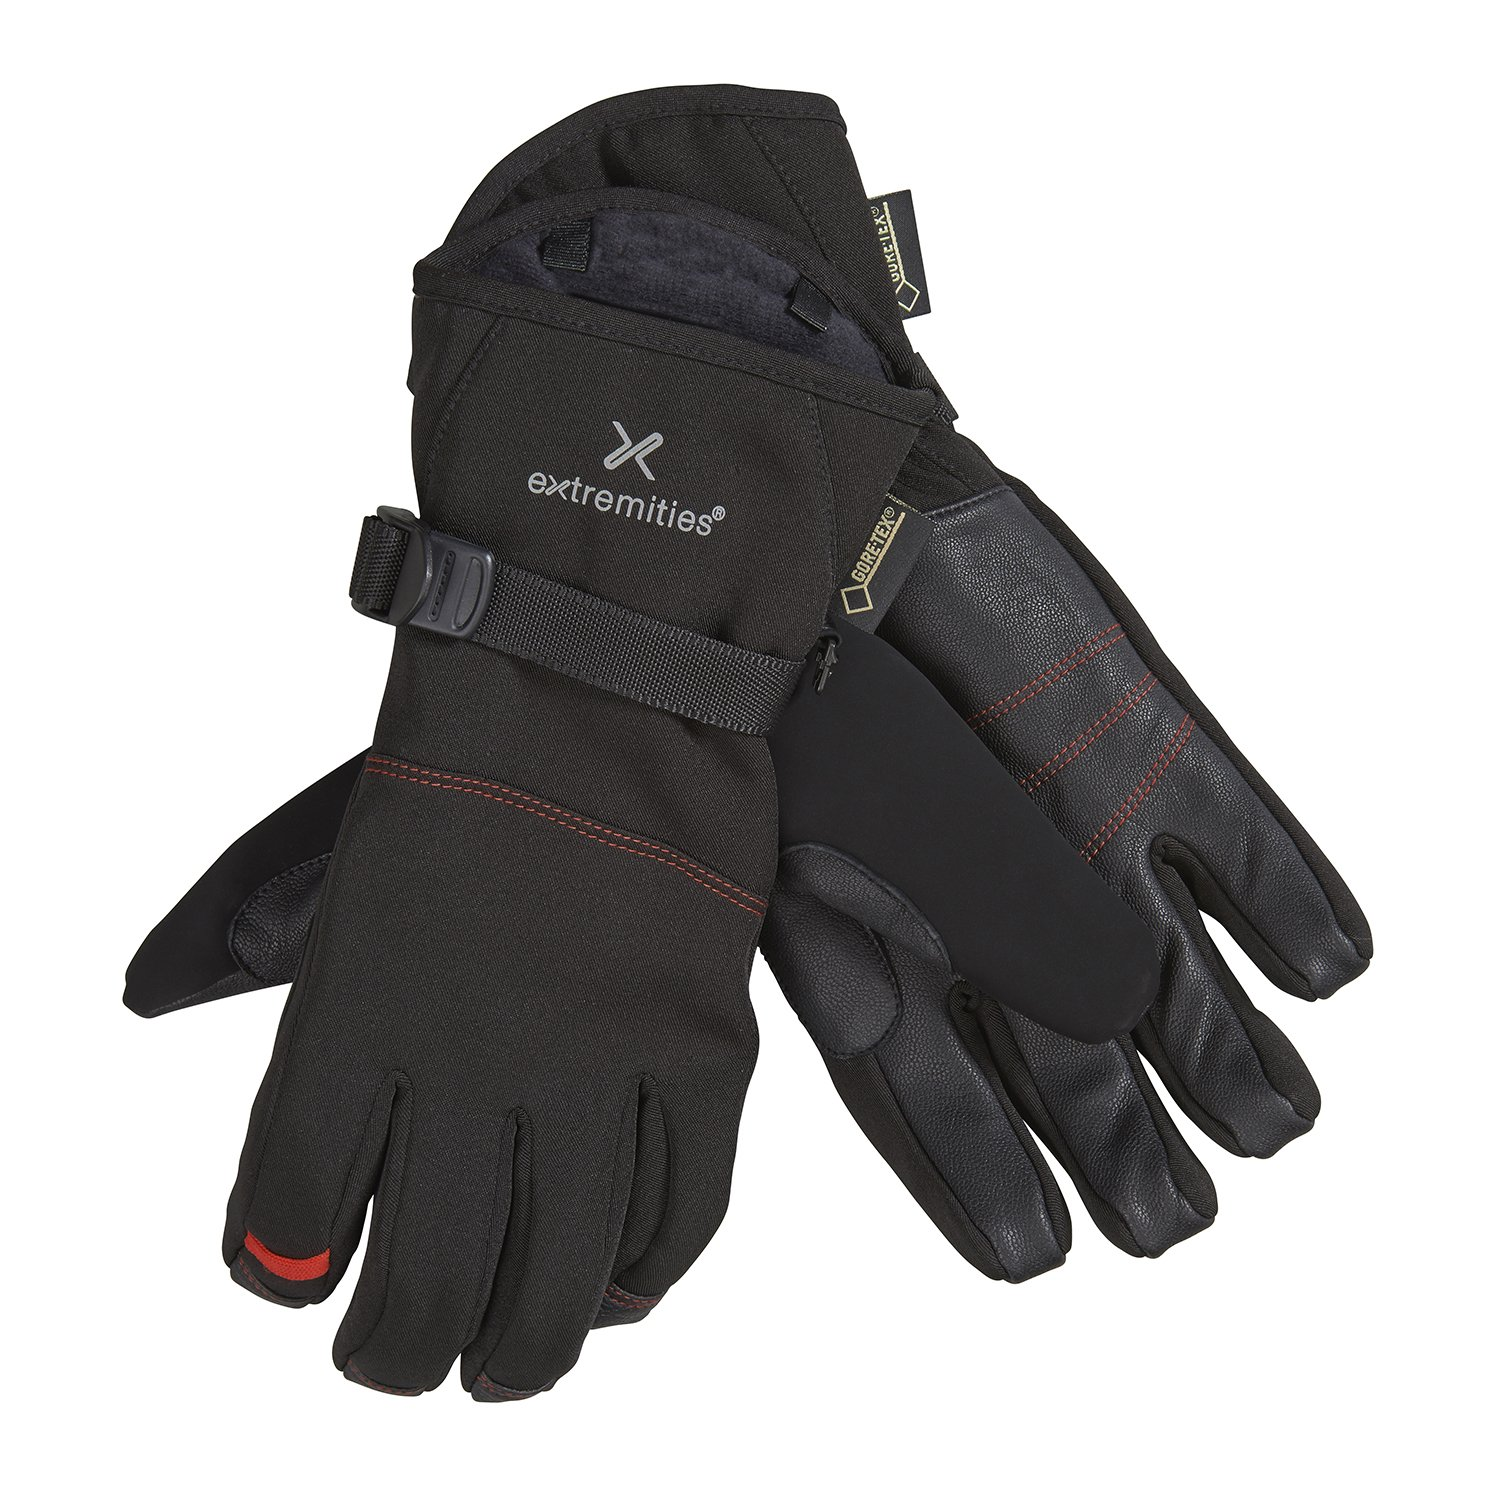 Extremities Antora Peak GTX Gloves